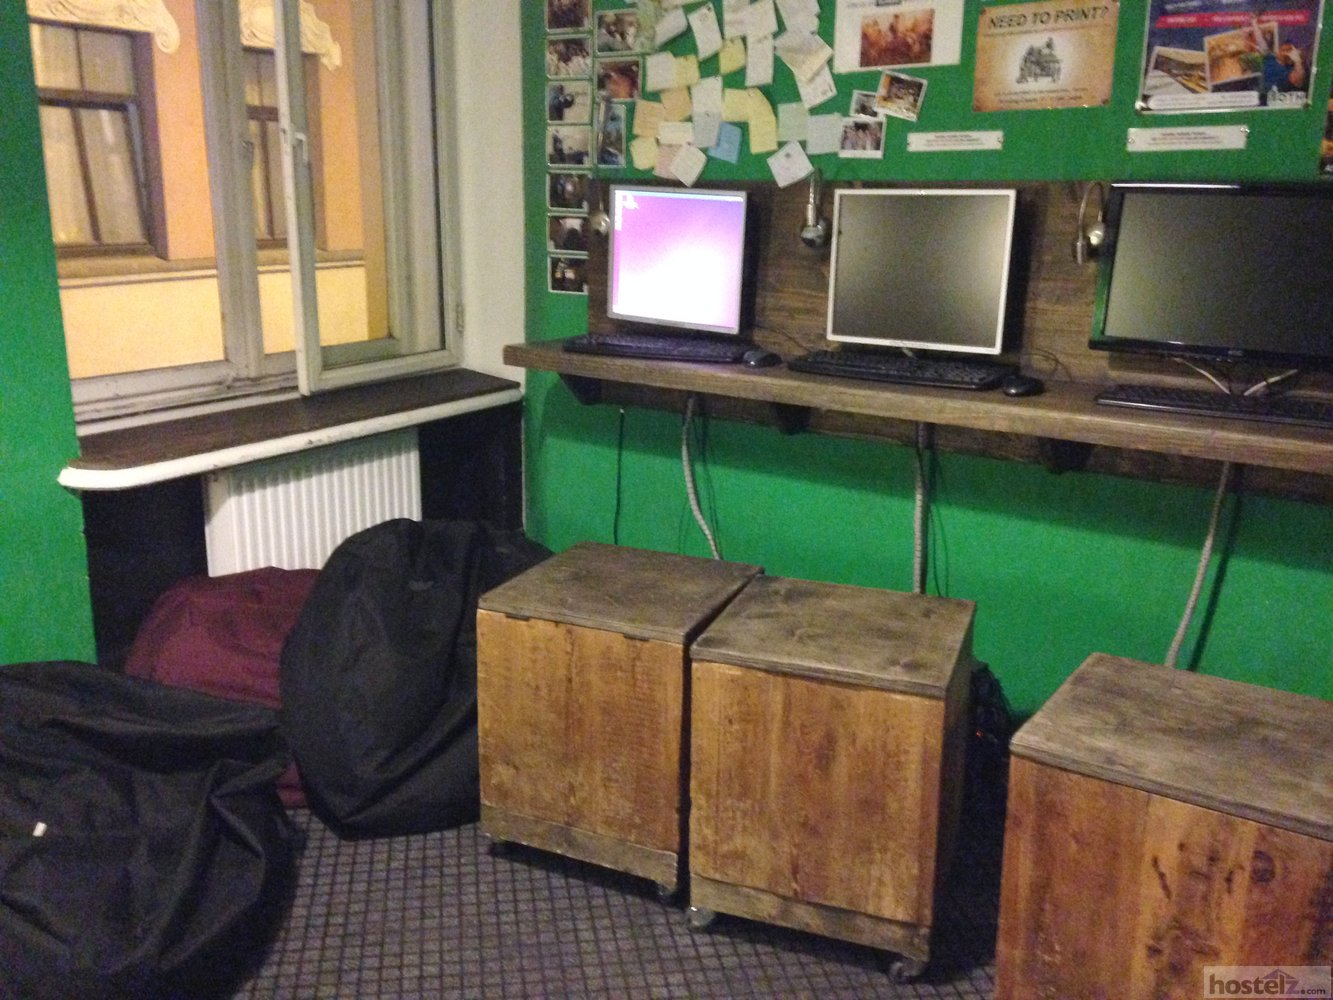 Computers in main common area